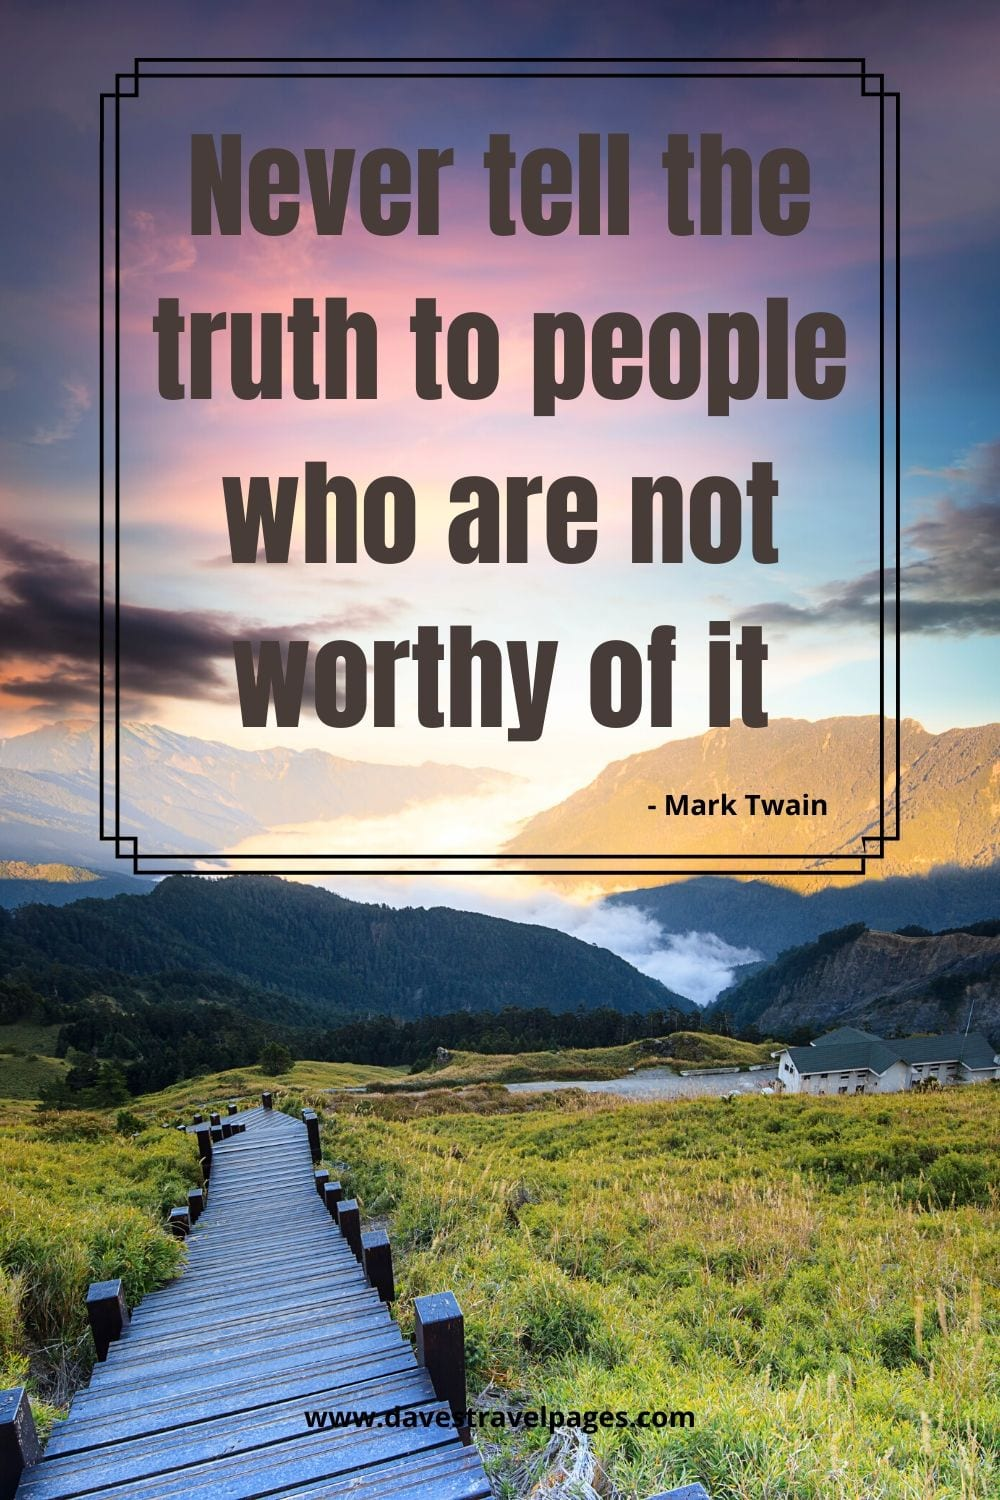 """Never tell the truth to people who are not worthy of it."" by Mark Twain"